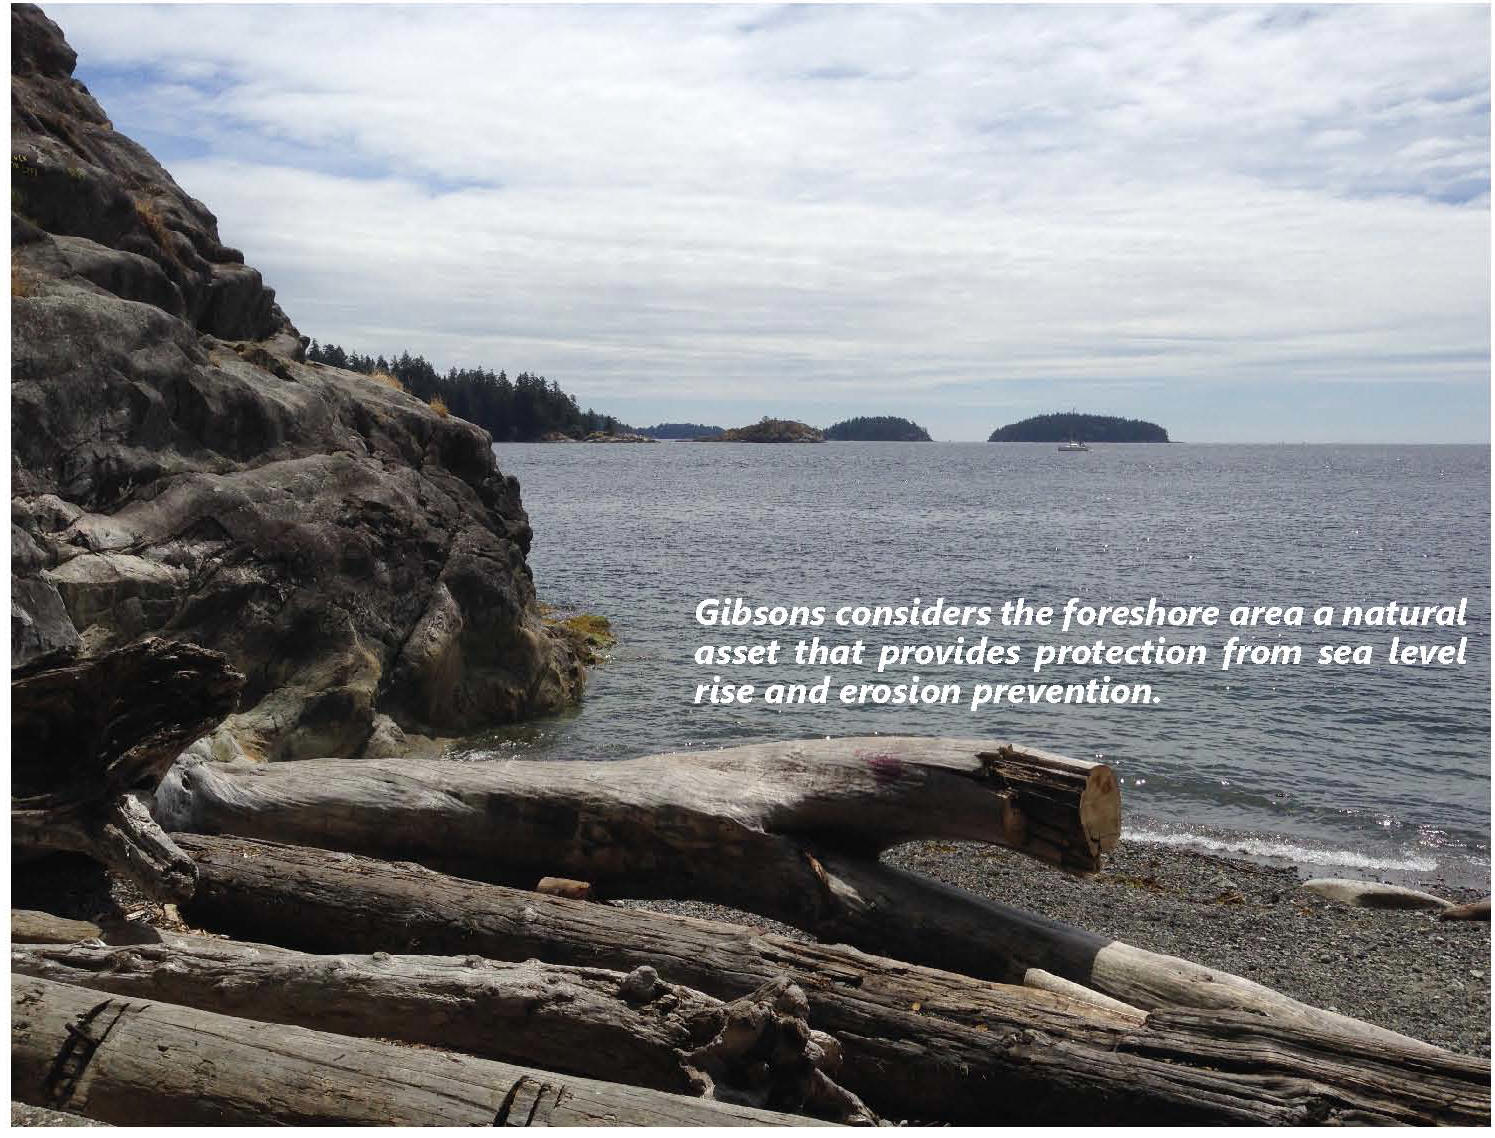 Town of Gibsons_Eco-Asset Strategy_foreshore